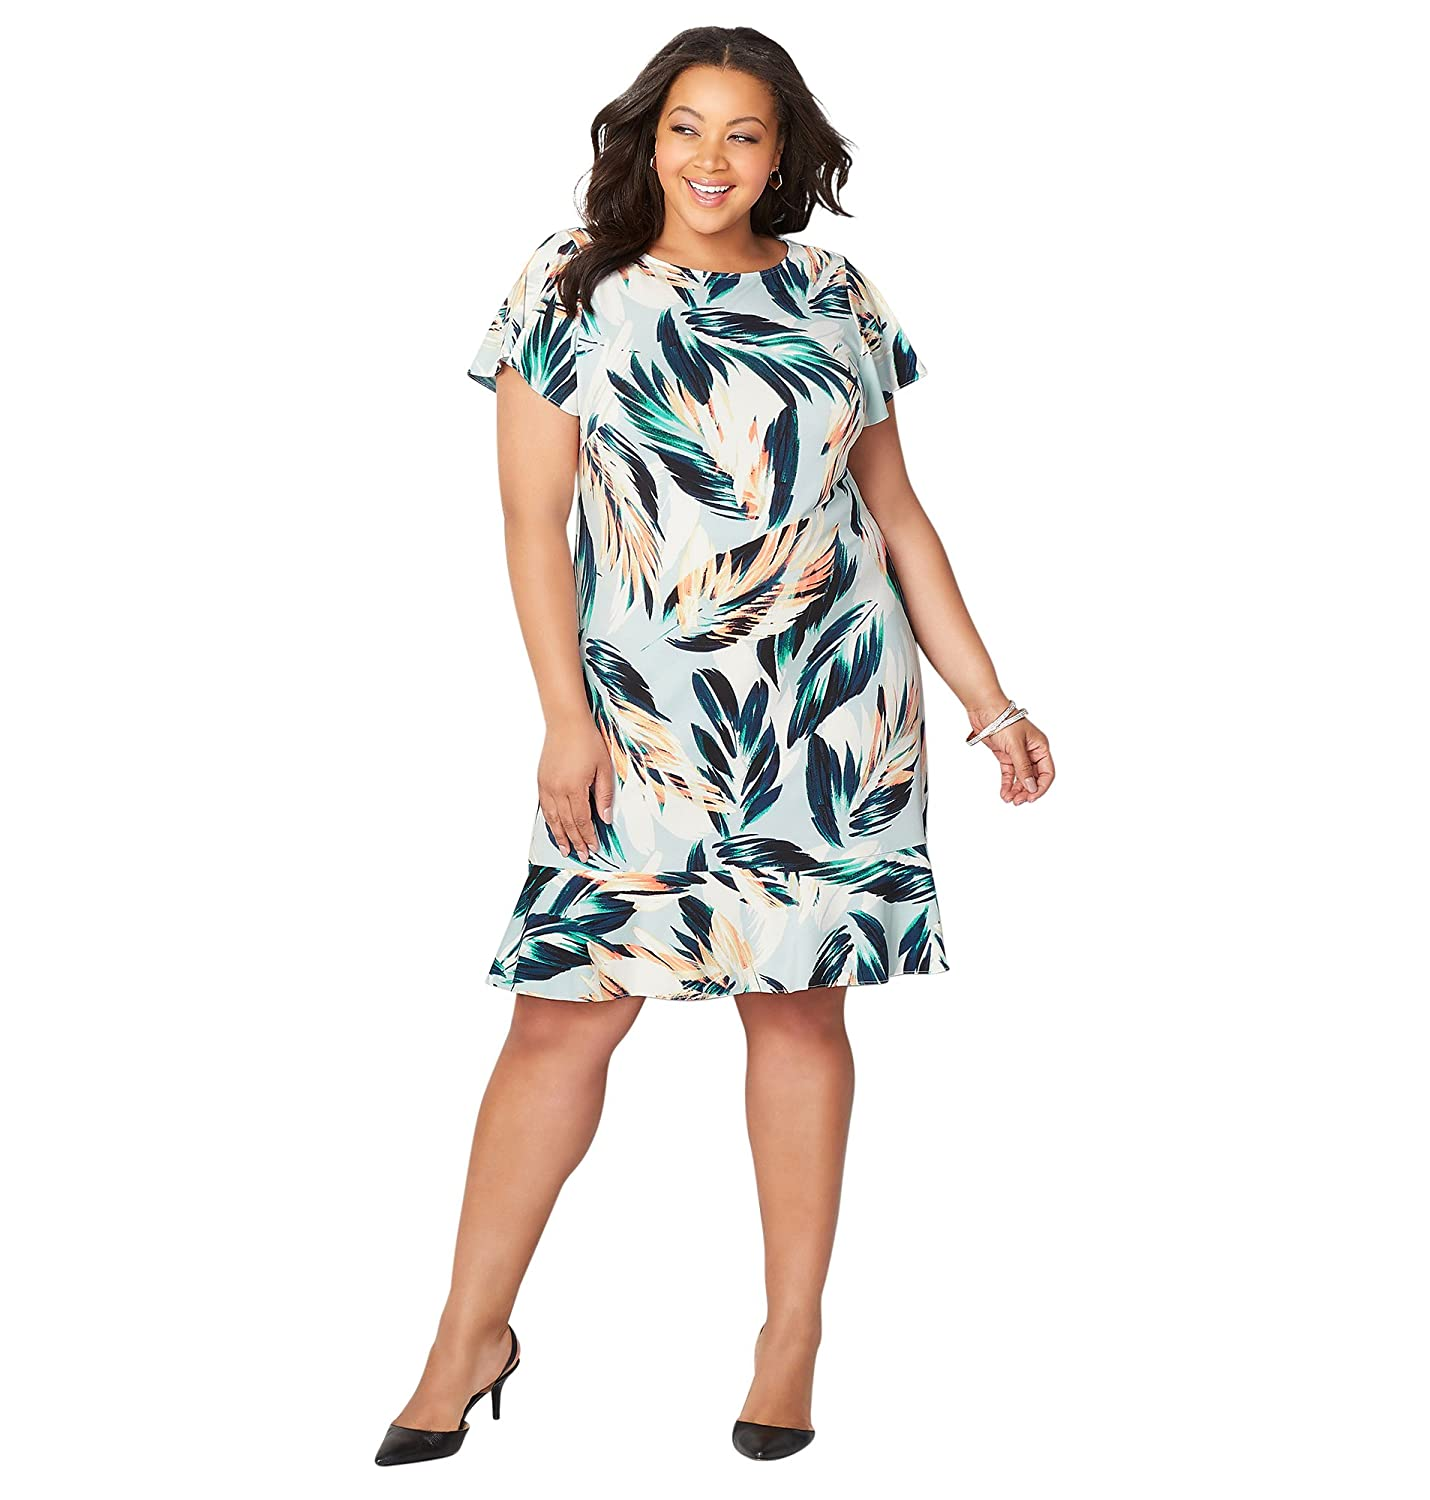 fe5d2e82d45 Answer it in style with this pretty dress in an allover palm leaf print.  Finished with a flounce hem